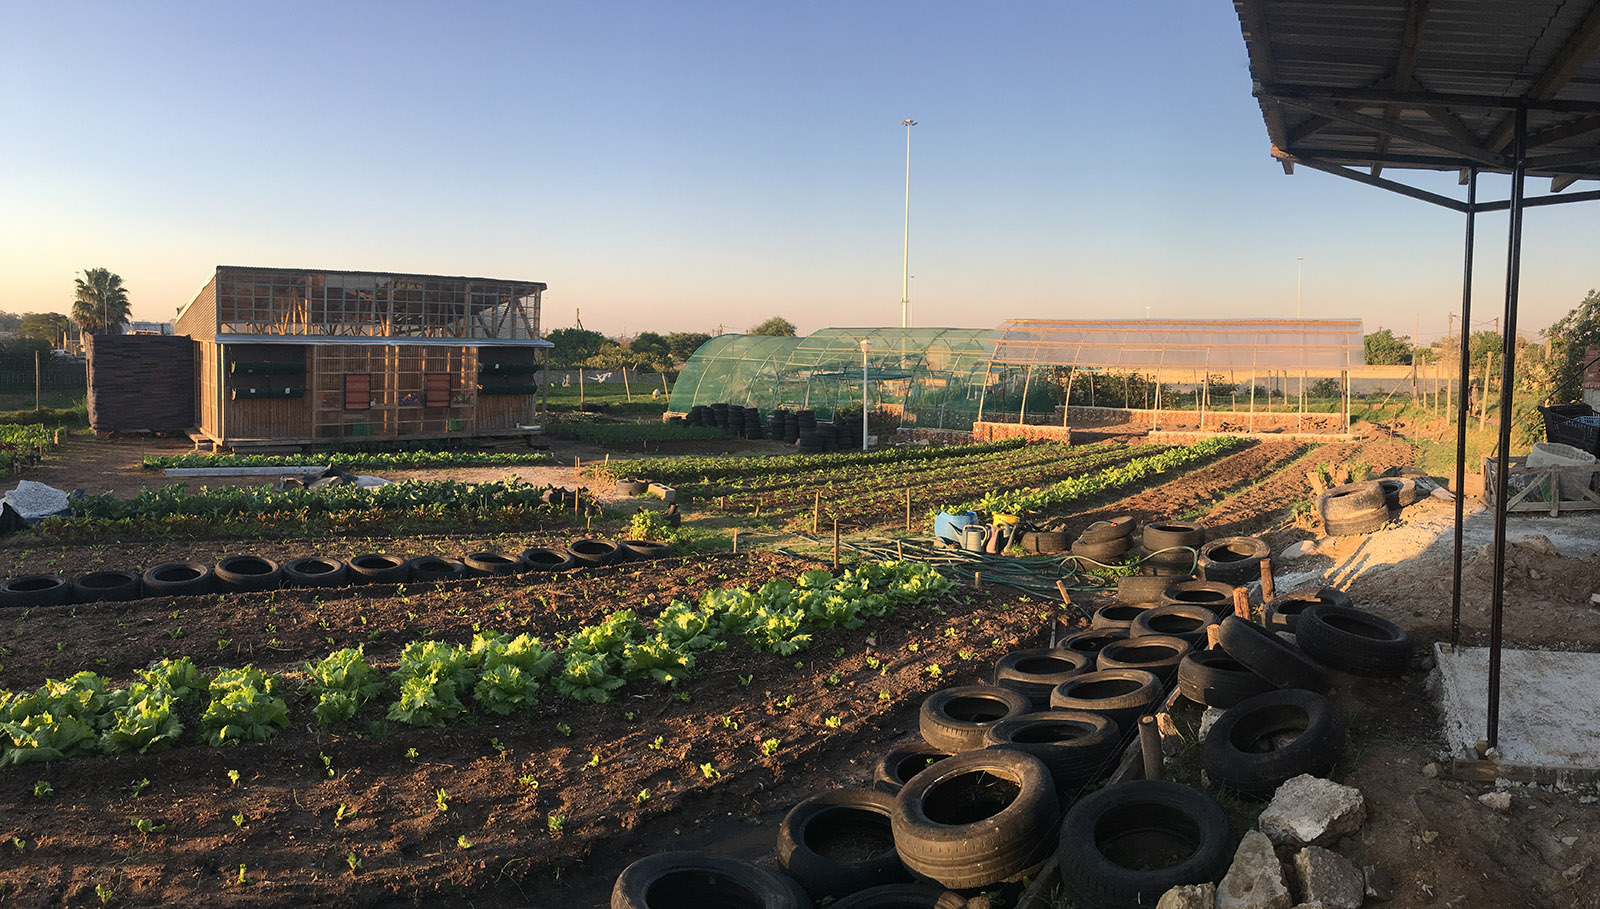 Lim'uphile Co-op stands behind rows of planted vegetables and rubber tires